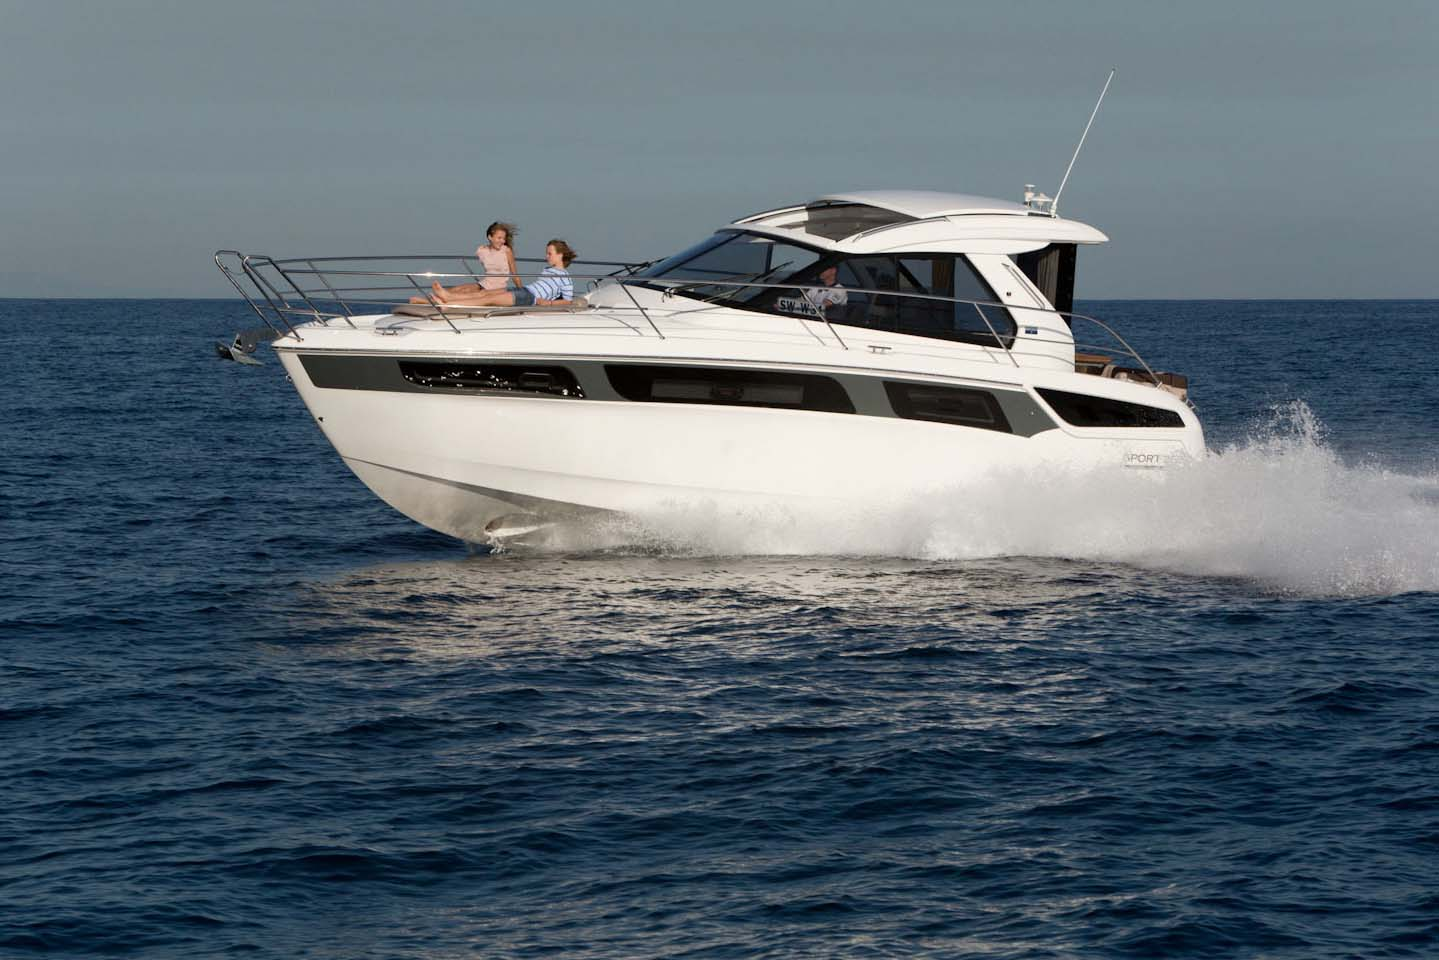 Bavaria sport 360 coupe best of boats award for Best boat for fishing and family fun